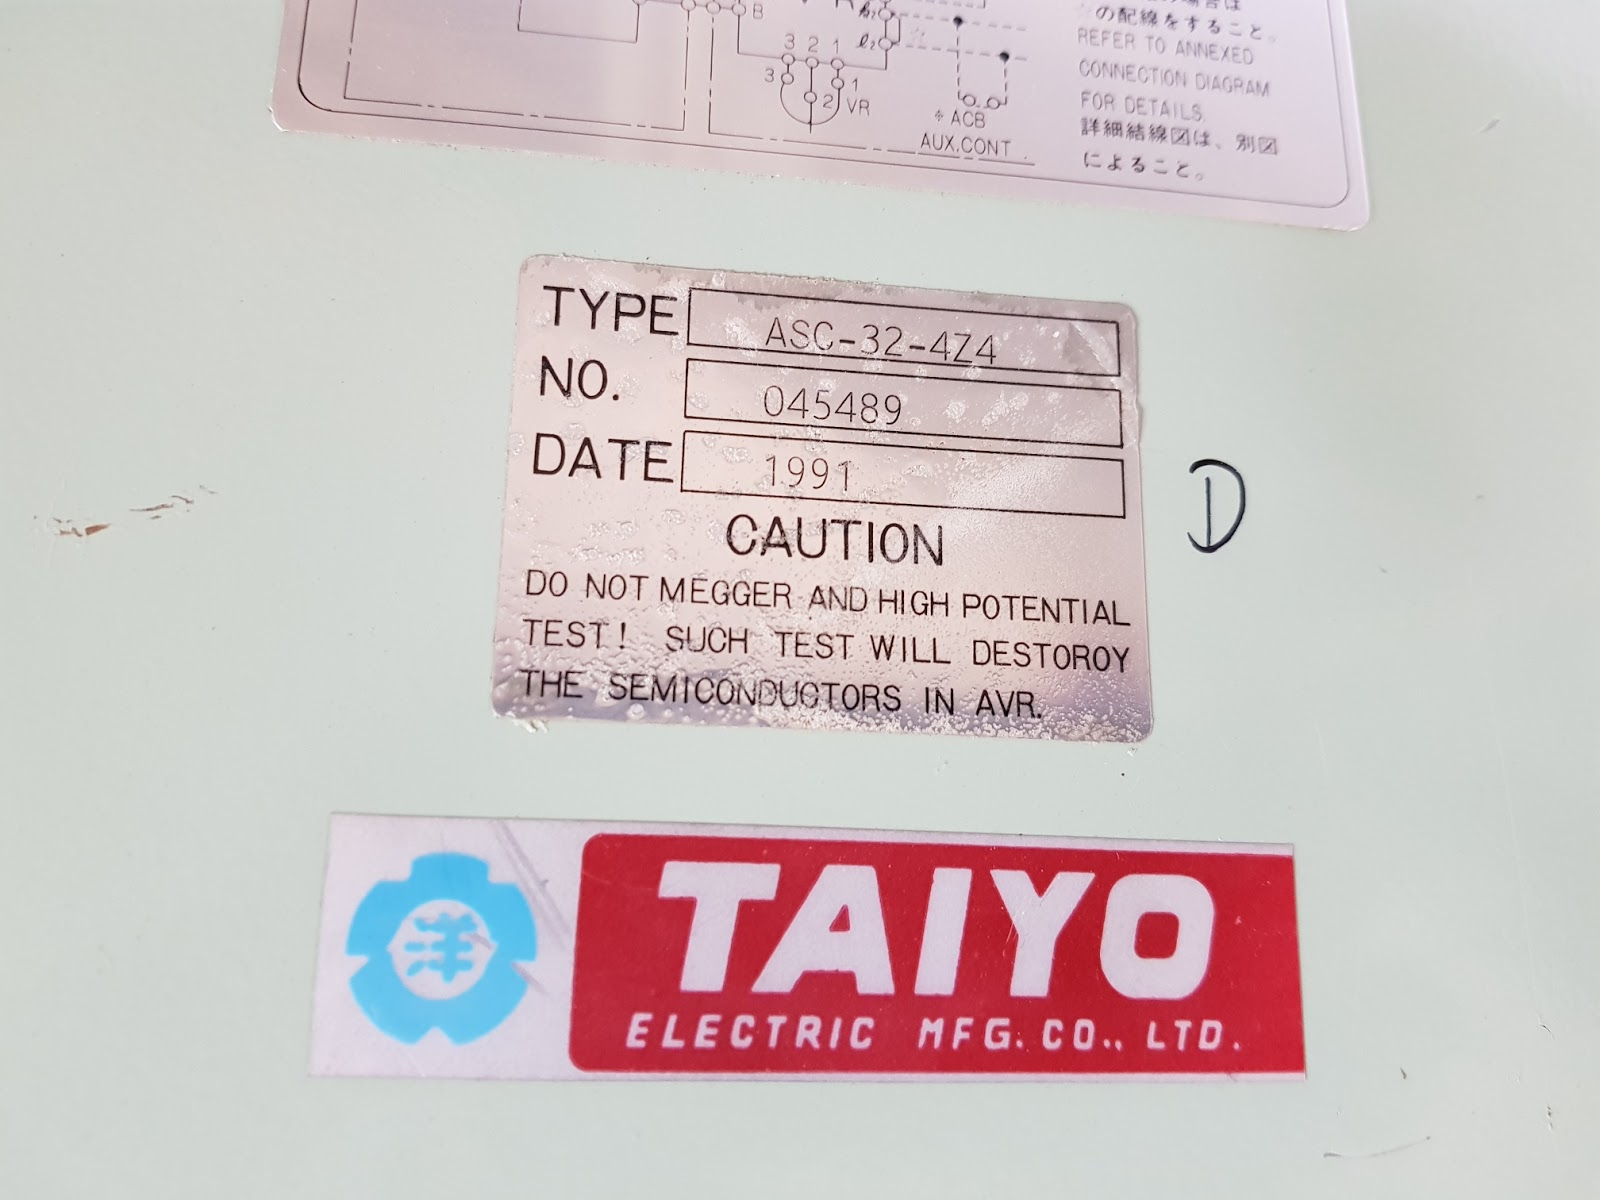 small resolution of taiyo automatic voltage regulator asc 32 4z4 type asc 32 4z4 serial no 045489 date 1998 1991 1996 mfg by taiyo electric co ltd